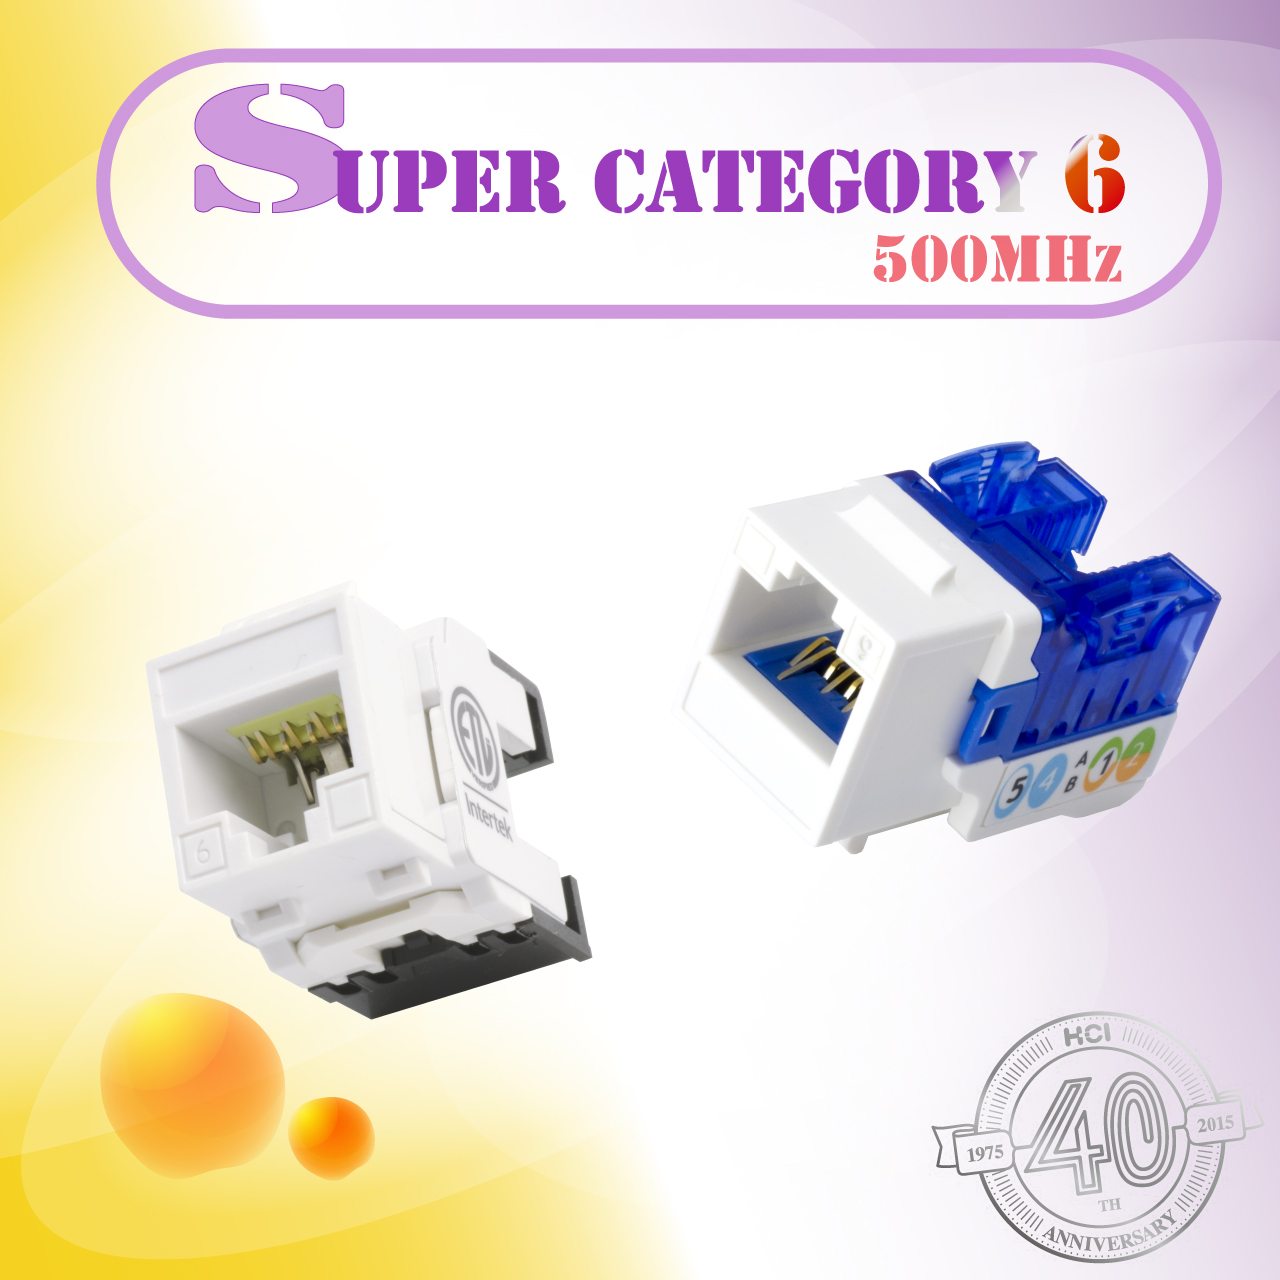 Super Category 6 Series - Super Category 6 Series Keystone jack